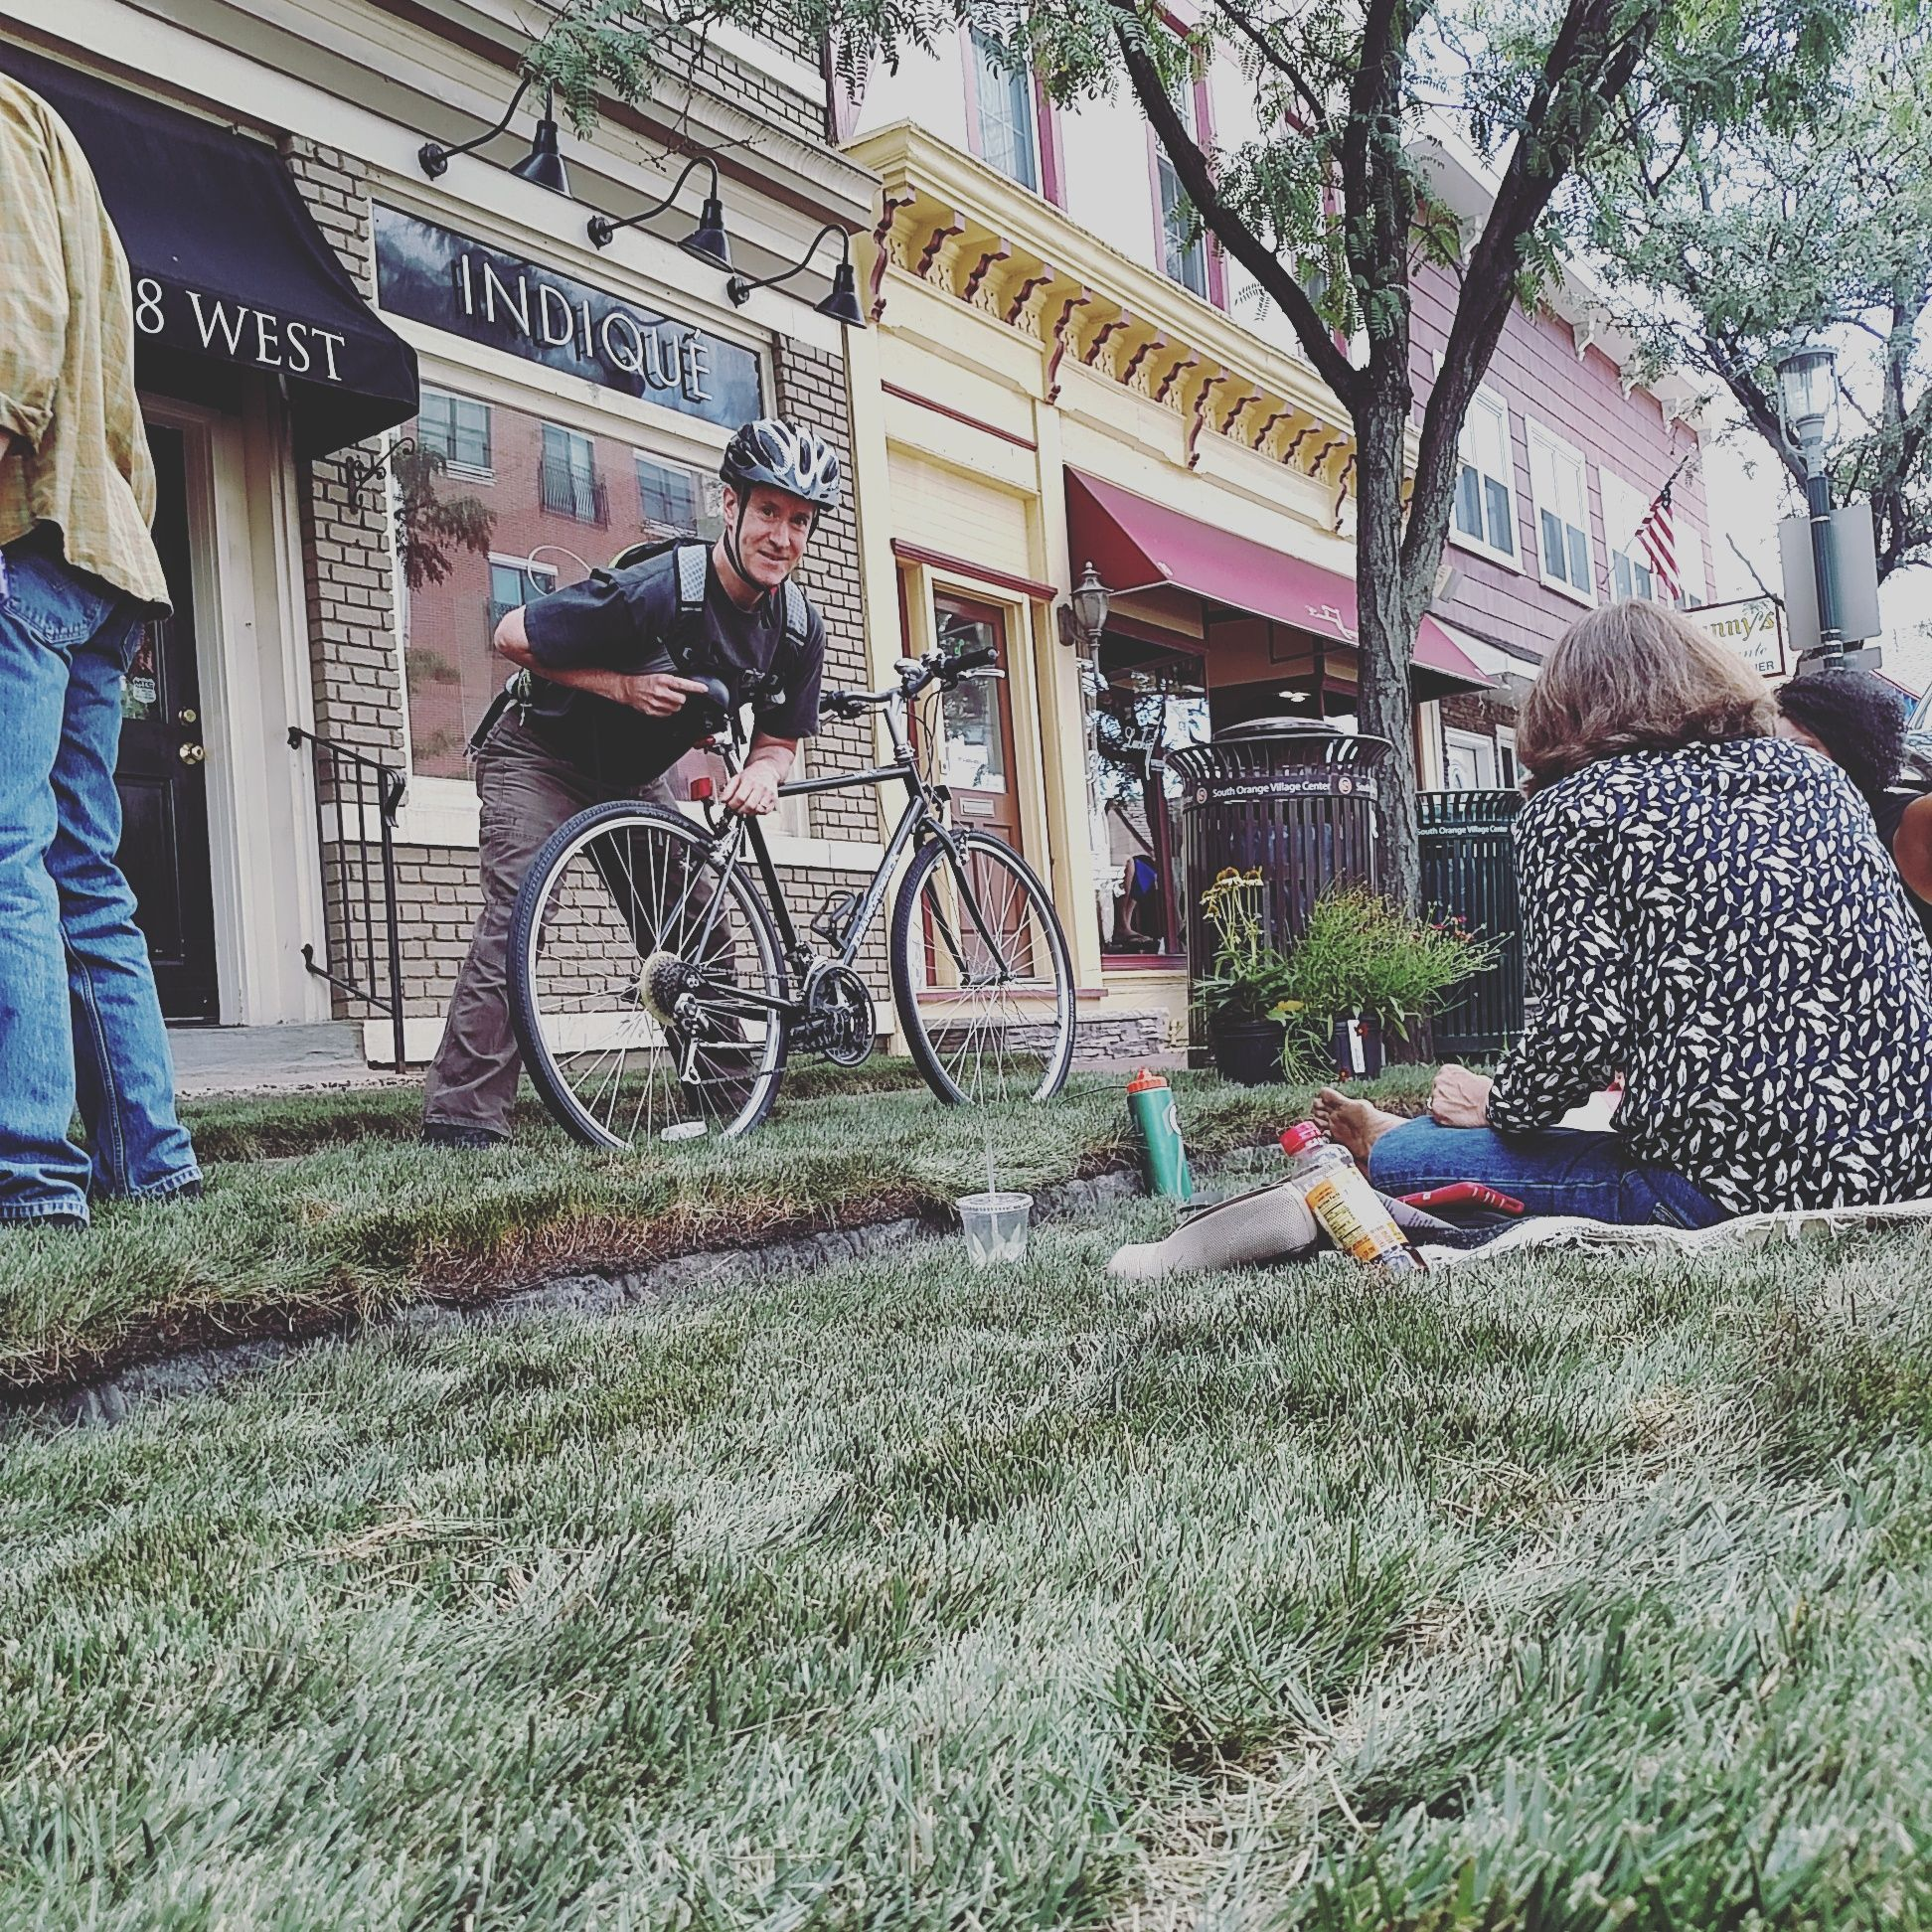 View of parklet in South Orange during Parking Day Photo by